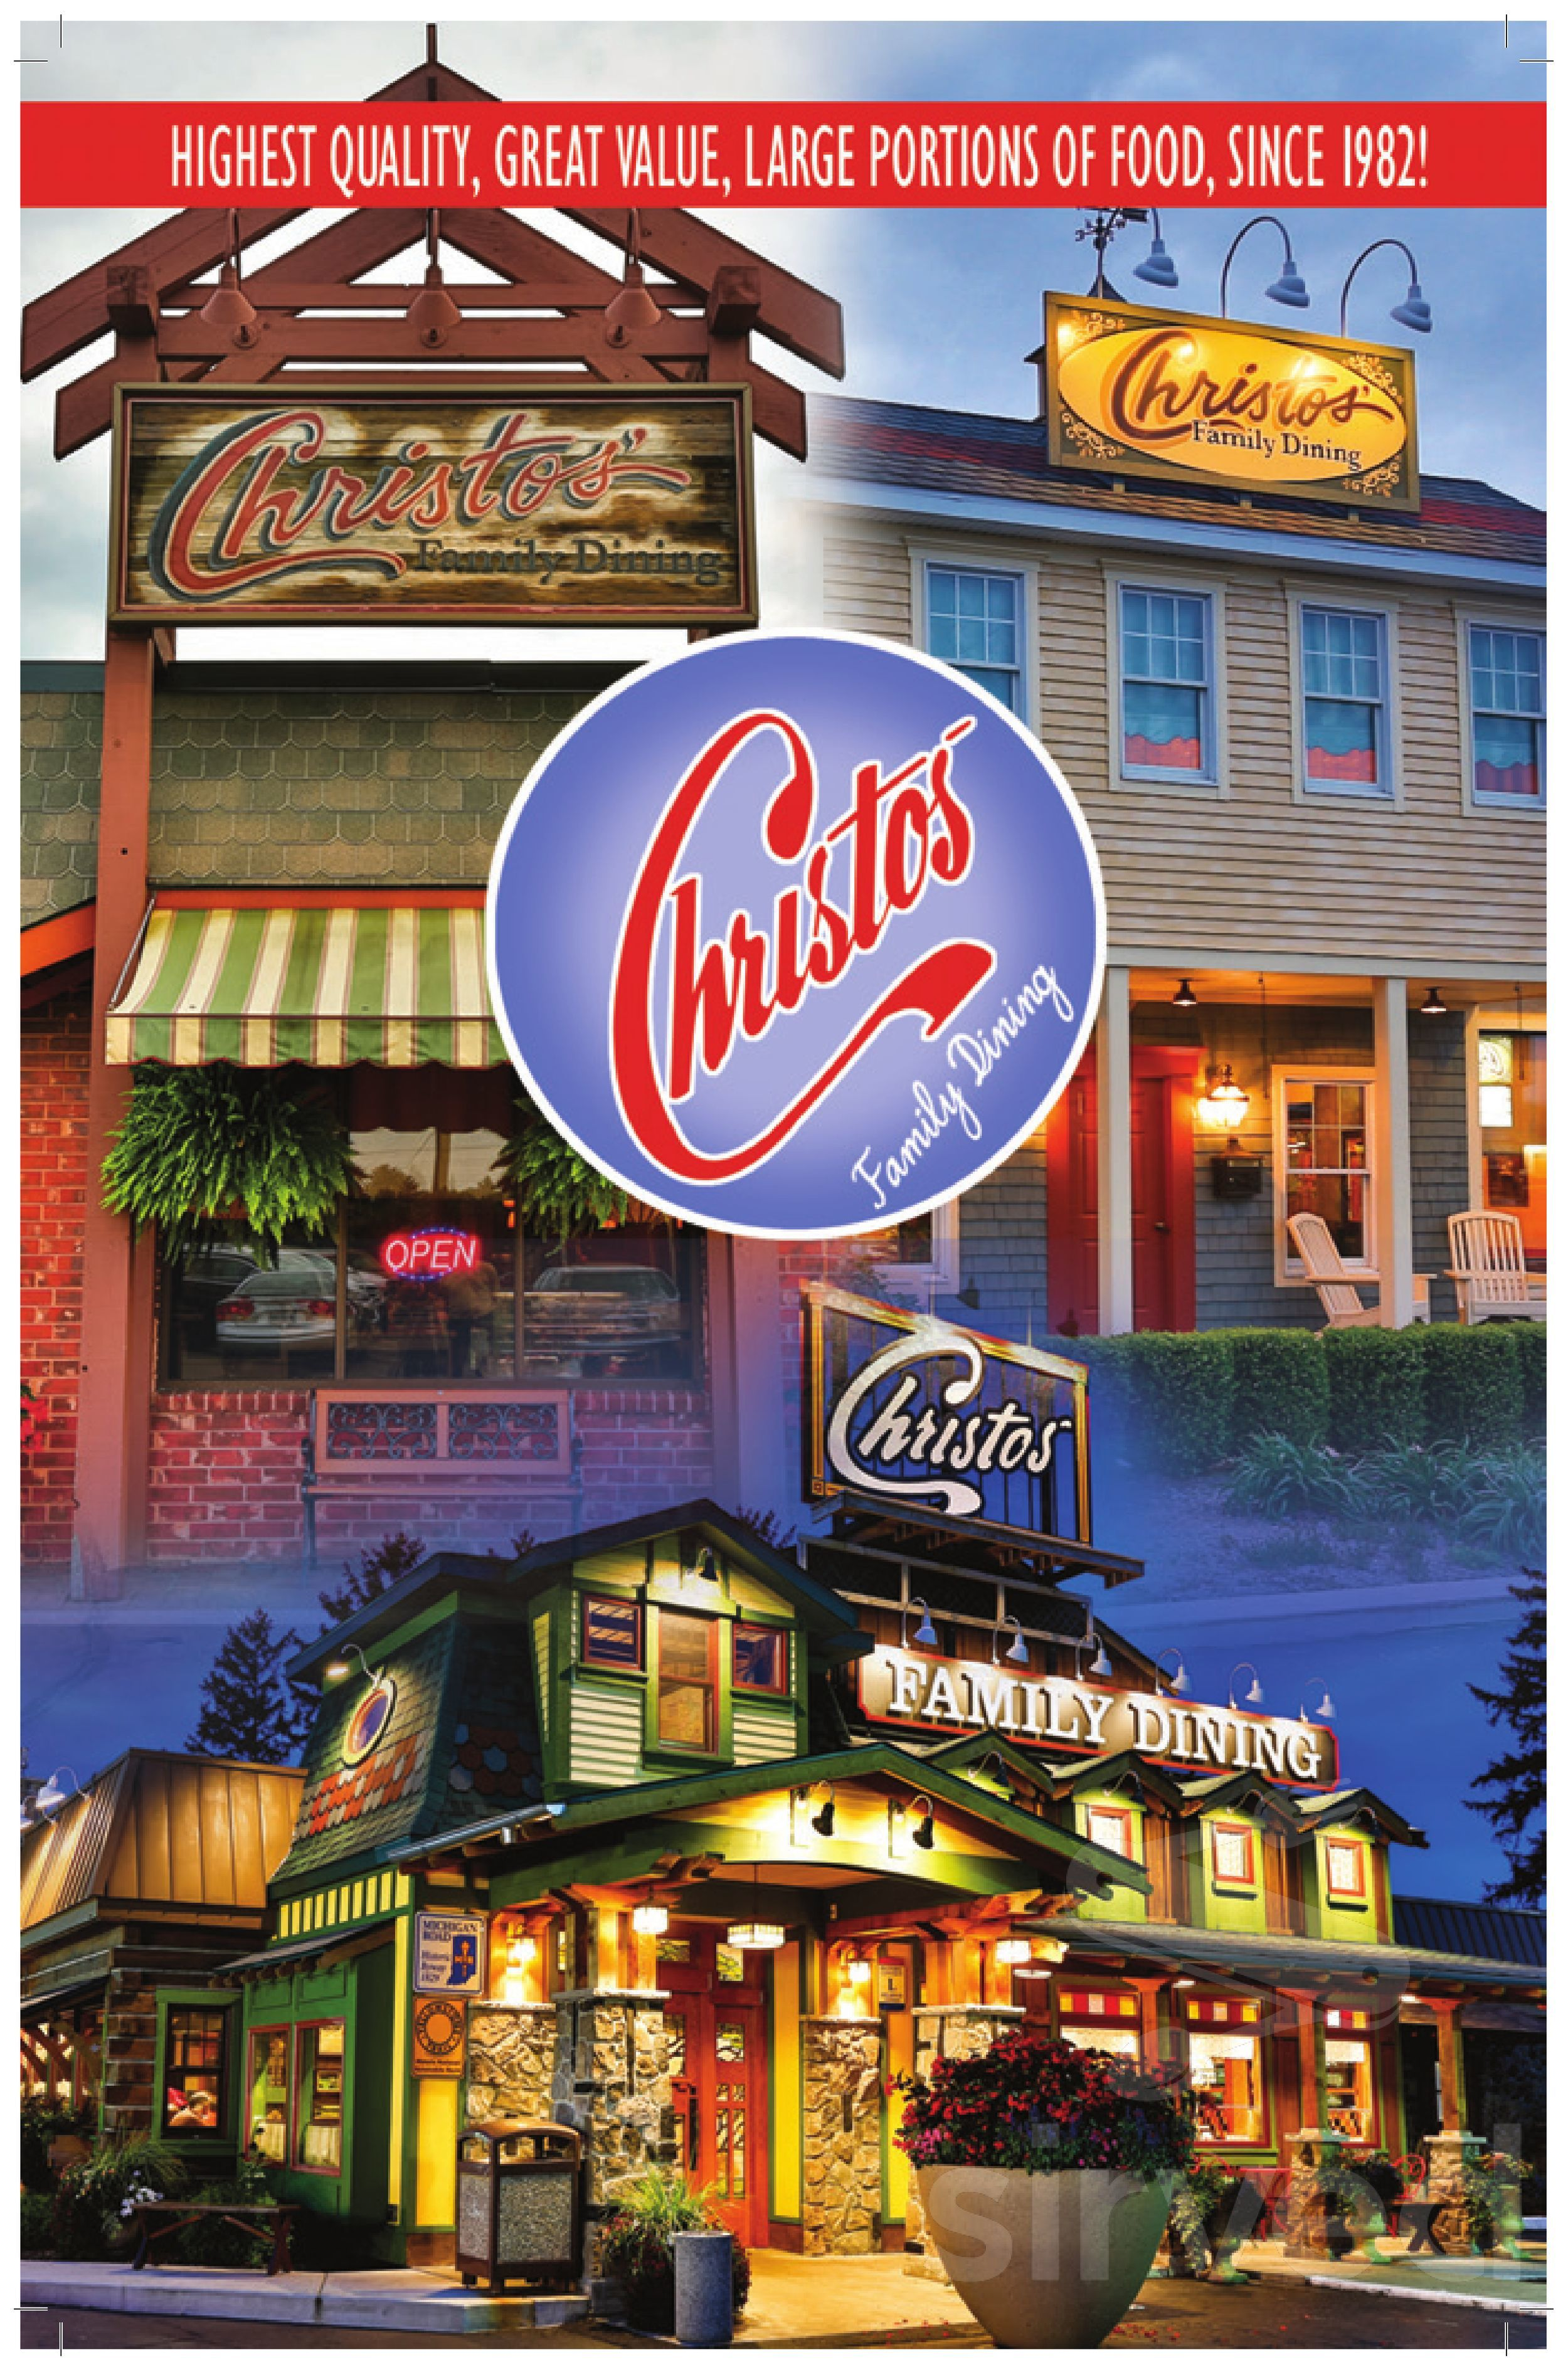 Christos Family Dining Menu In Plymouth Indiana Usa